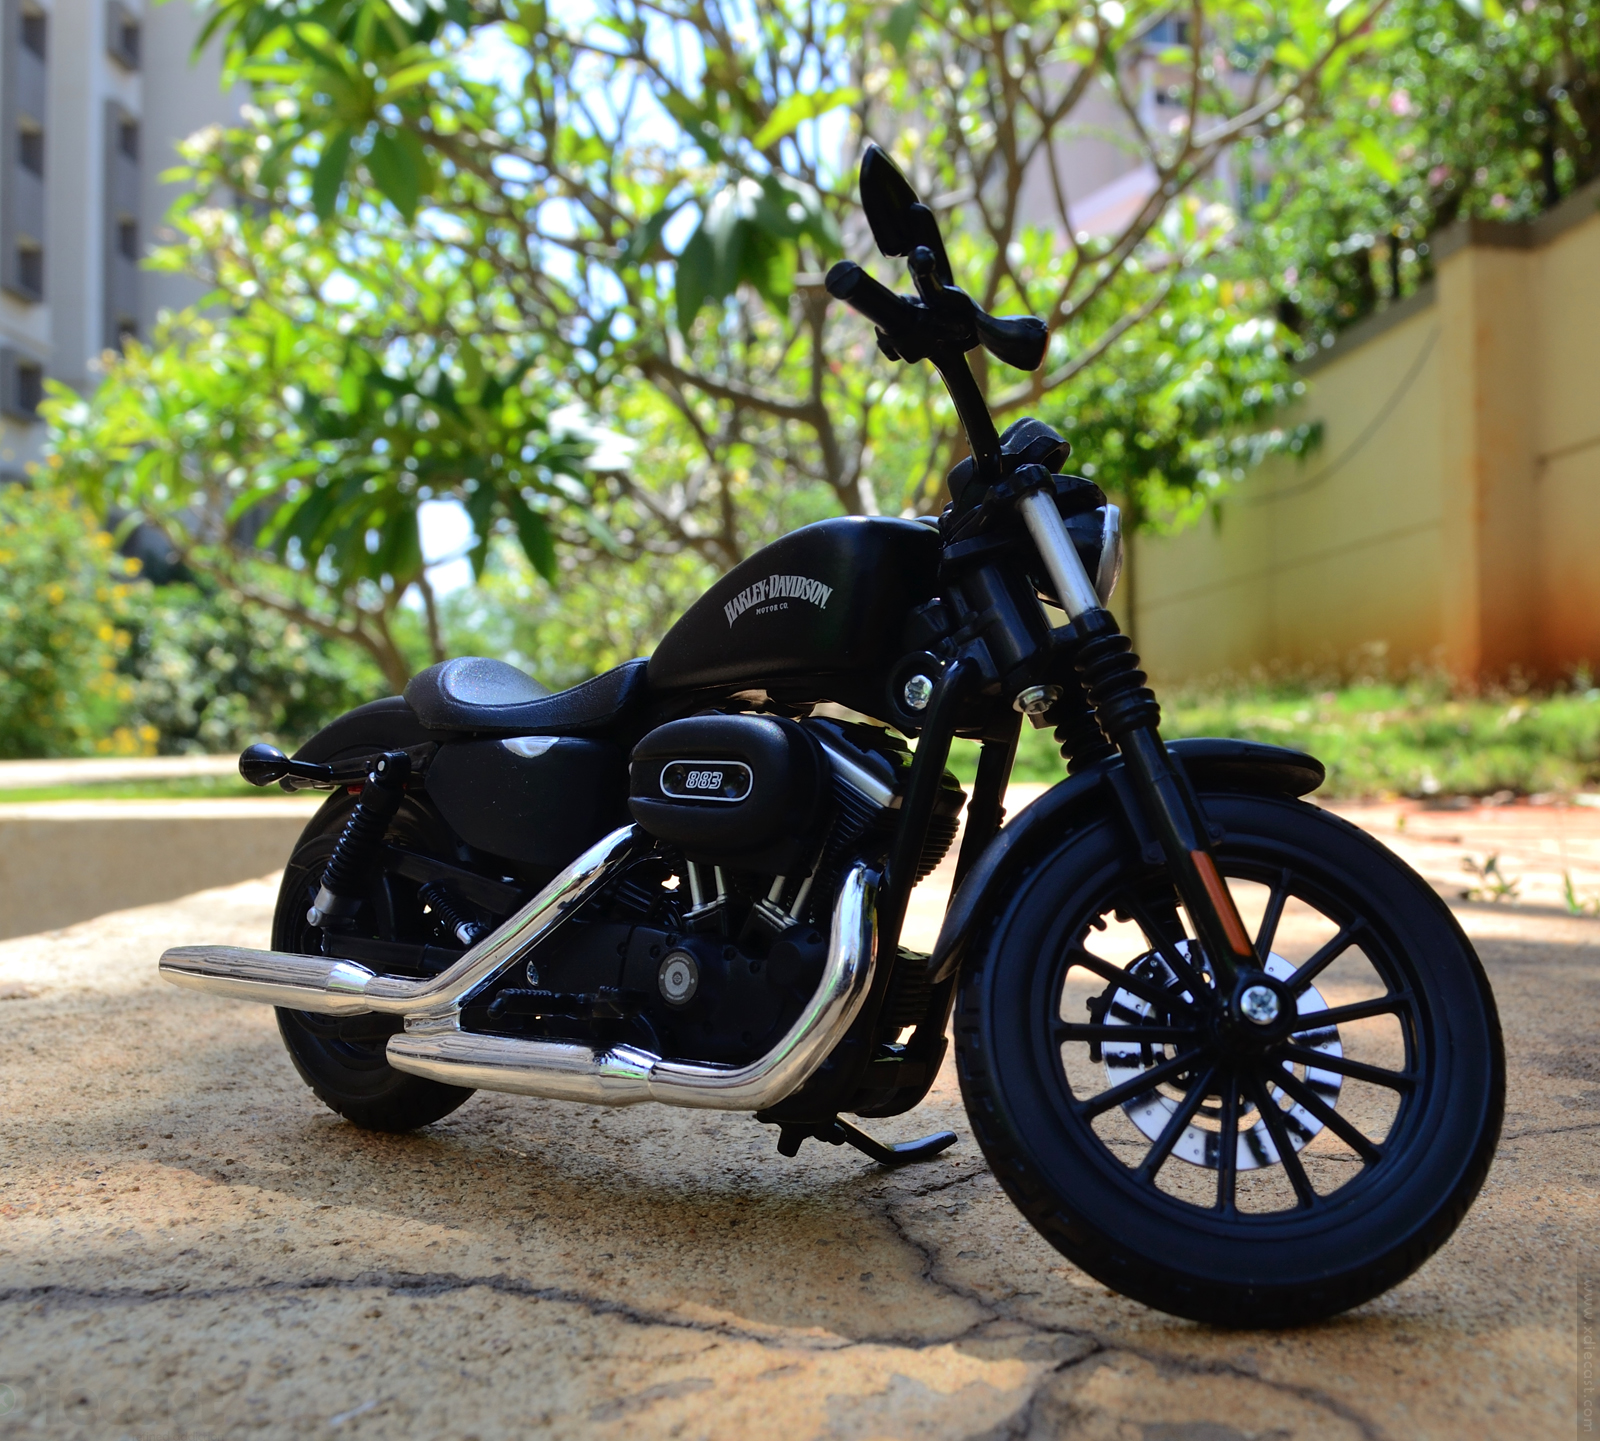 maisto harley davidson sportster iron 883 2014 diecast motorcycle review xdiecast. Black Bedroom Furniture Sets. Home Design Ideas